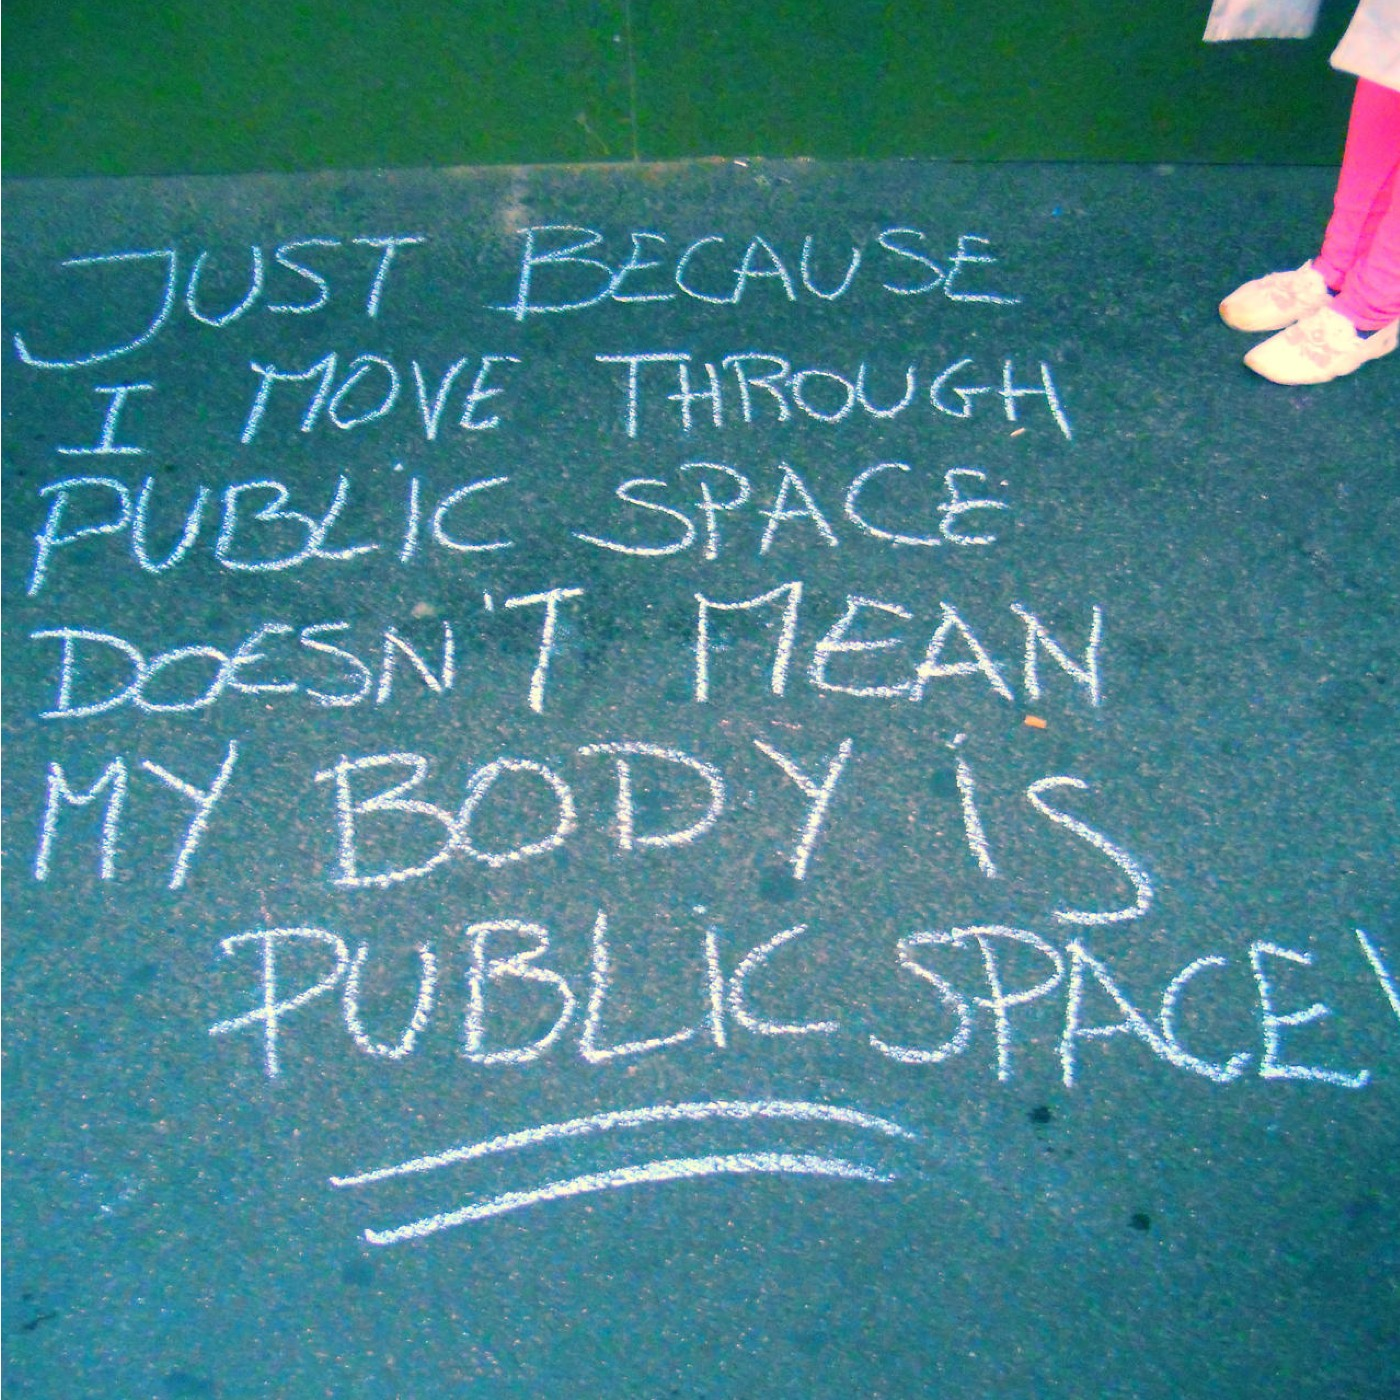 (2014/11/14) Hey girl, you want me to respect your personal space? (Street Harassment)